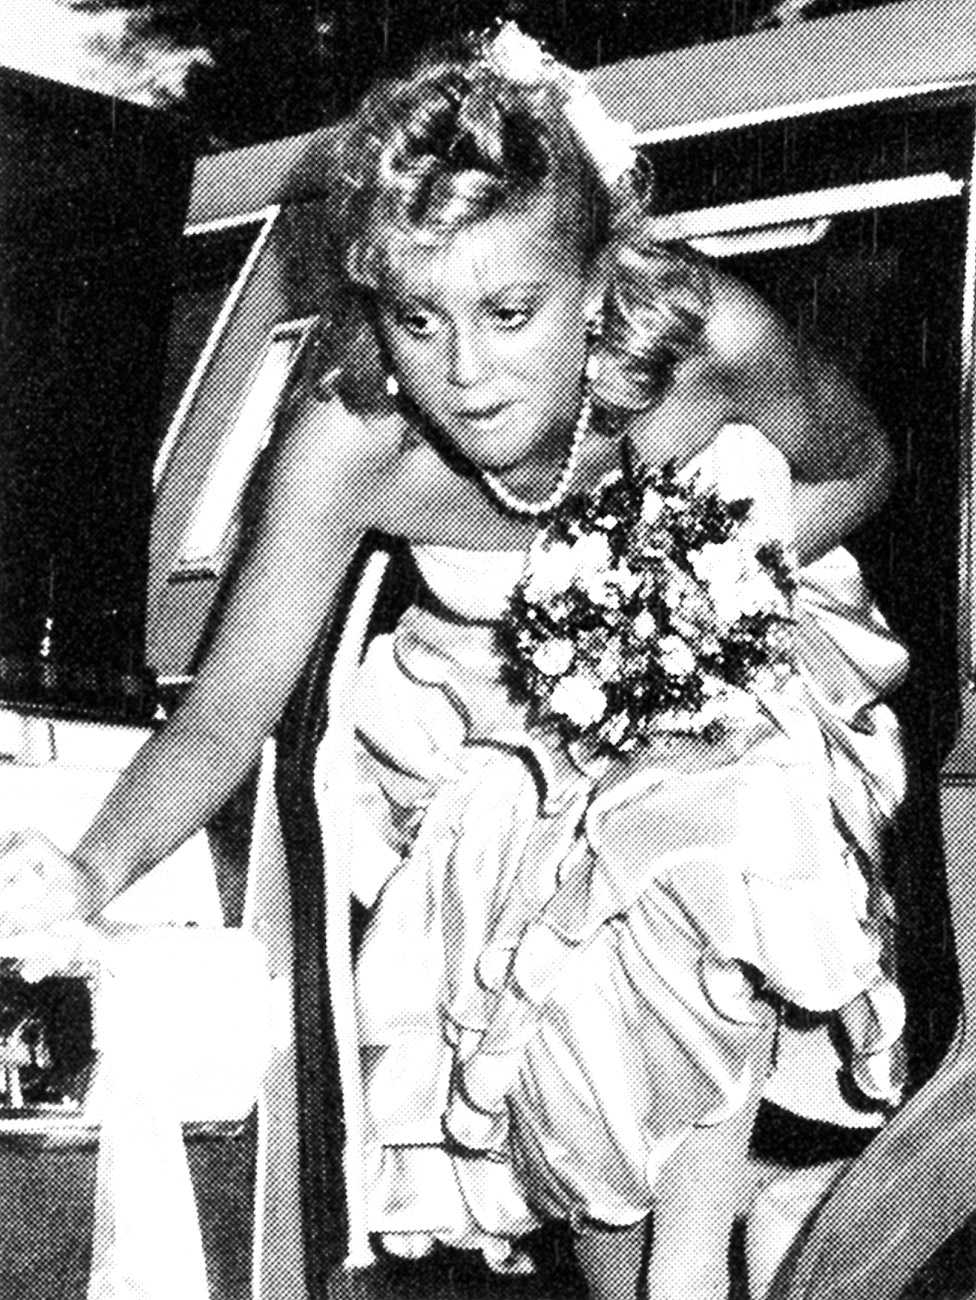 She's known for her sense of humor, but Amy Poehler is indifferent in this candid photo pulling up to the Burlington High School prom in MA in 1989.